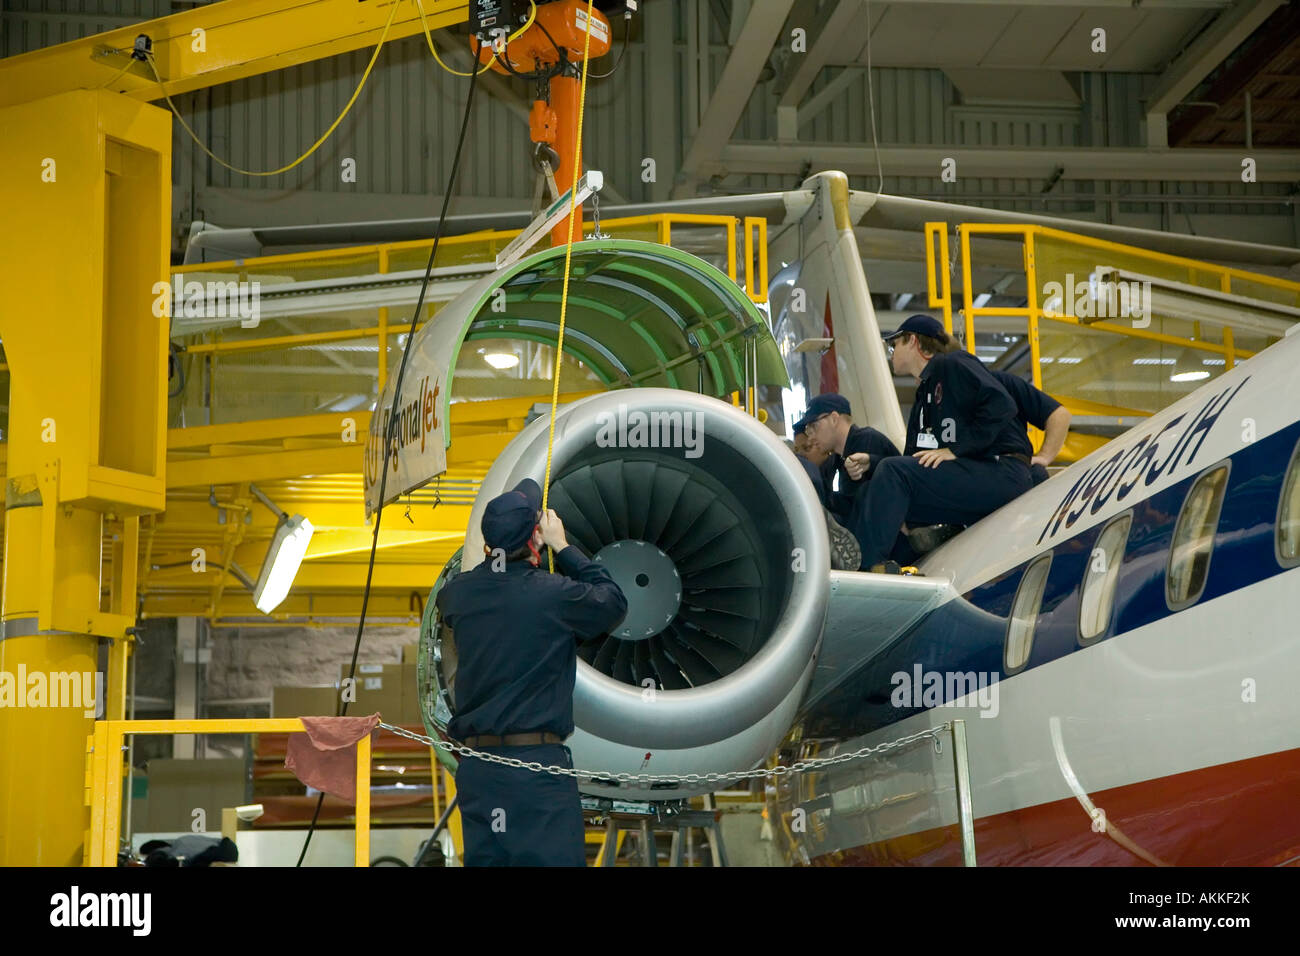 Workers do heavy maintenance on American Eagle Embraer jet airplanes at Sawyer International Airport - Stock Image